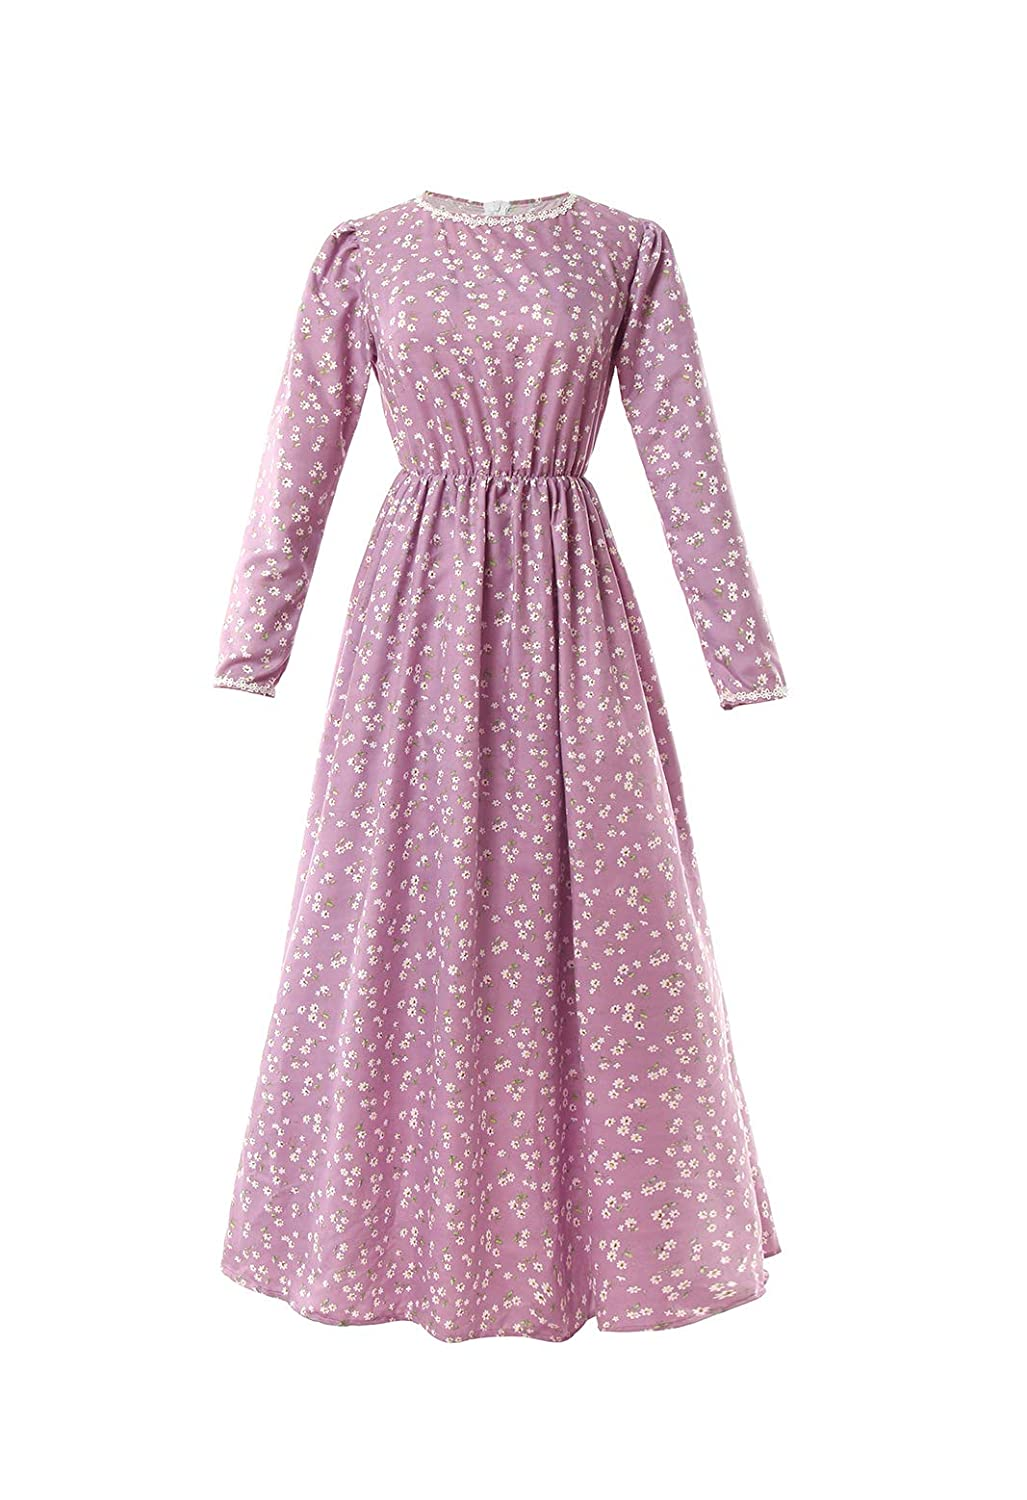 Cottagecore Clothing, Soft Aesthetic  Dress Deluxe Colonial Dress Laura Ingalls Costume ROLECOS Pioneer Women Costume Floral Prairie $35.99 AT vintagedancer.com